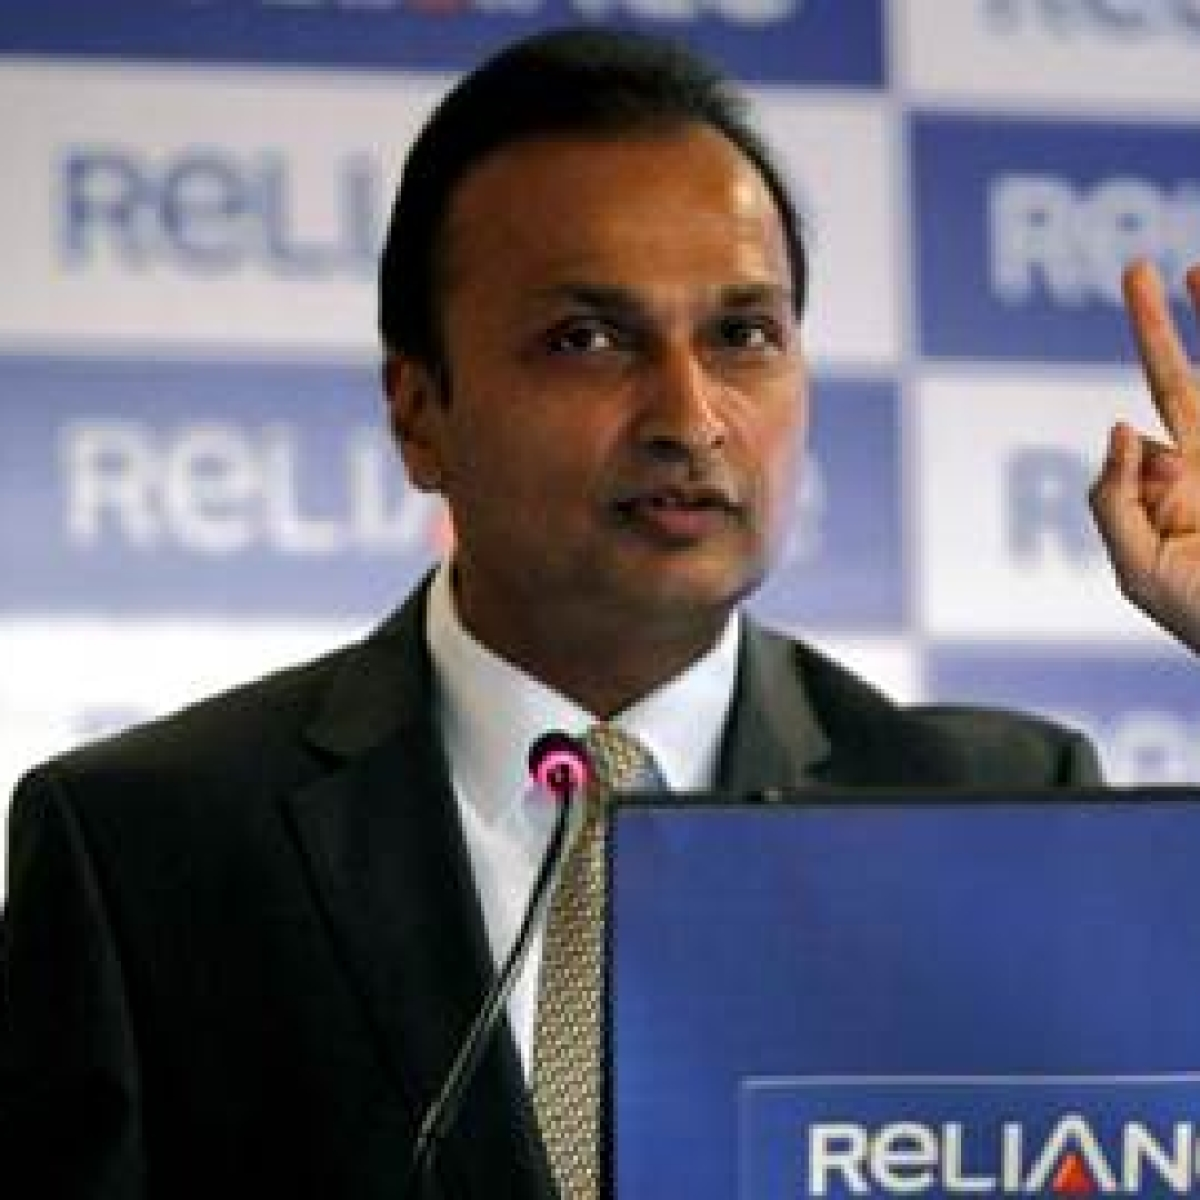 Reliance Home Finance's long-term debt instruments downgraded by CARE Ratings